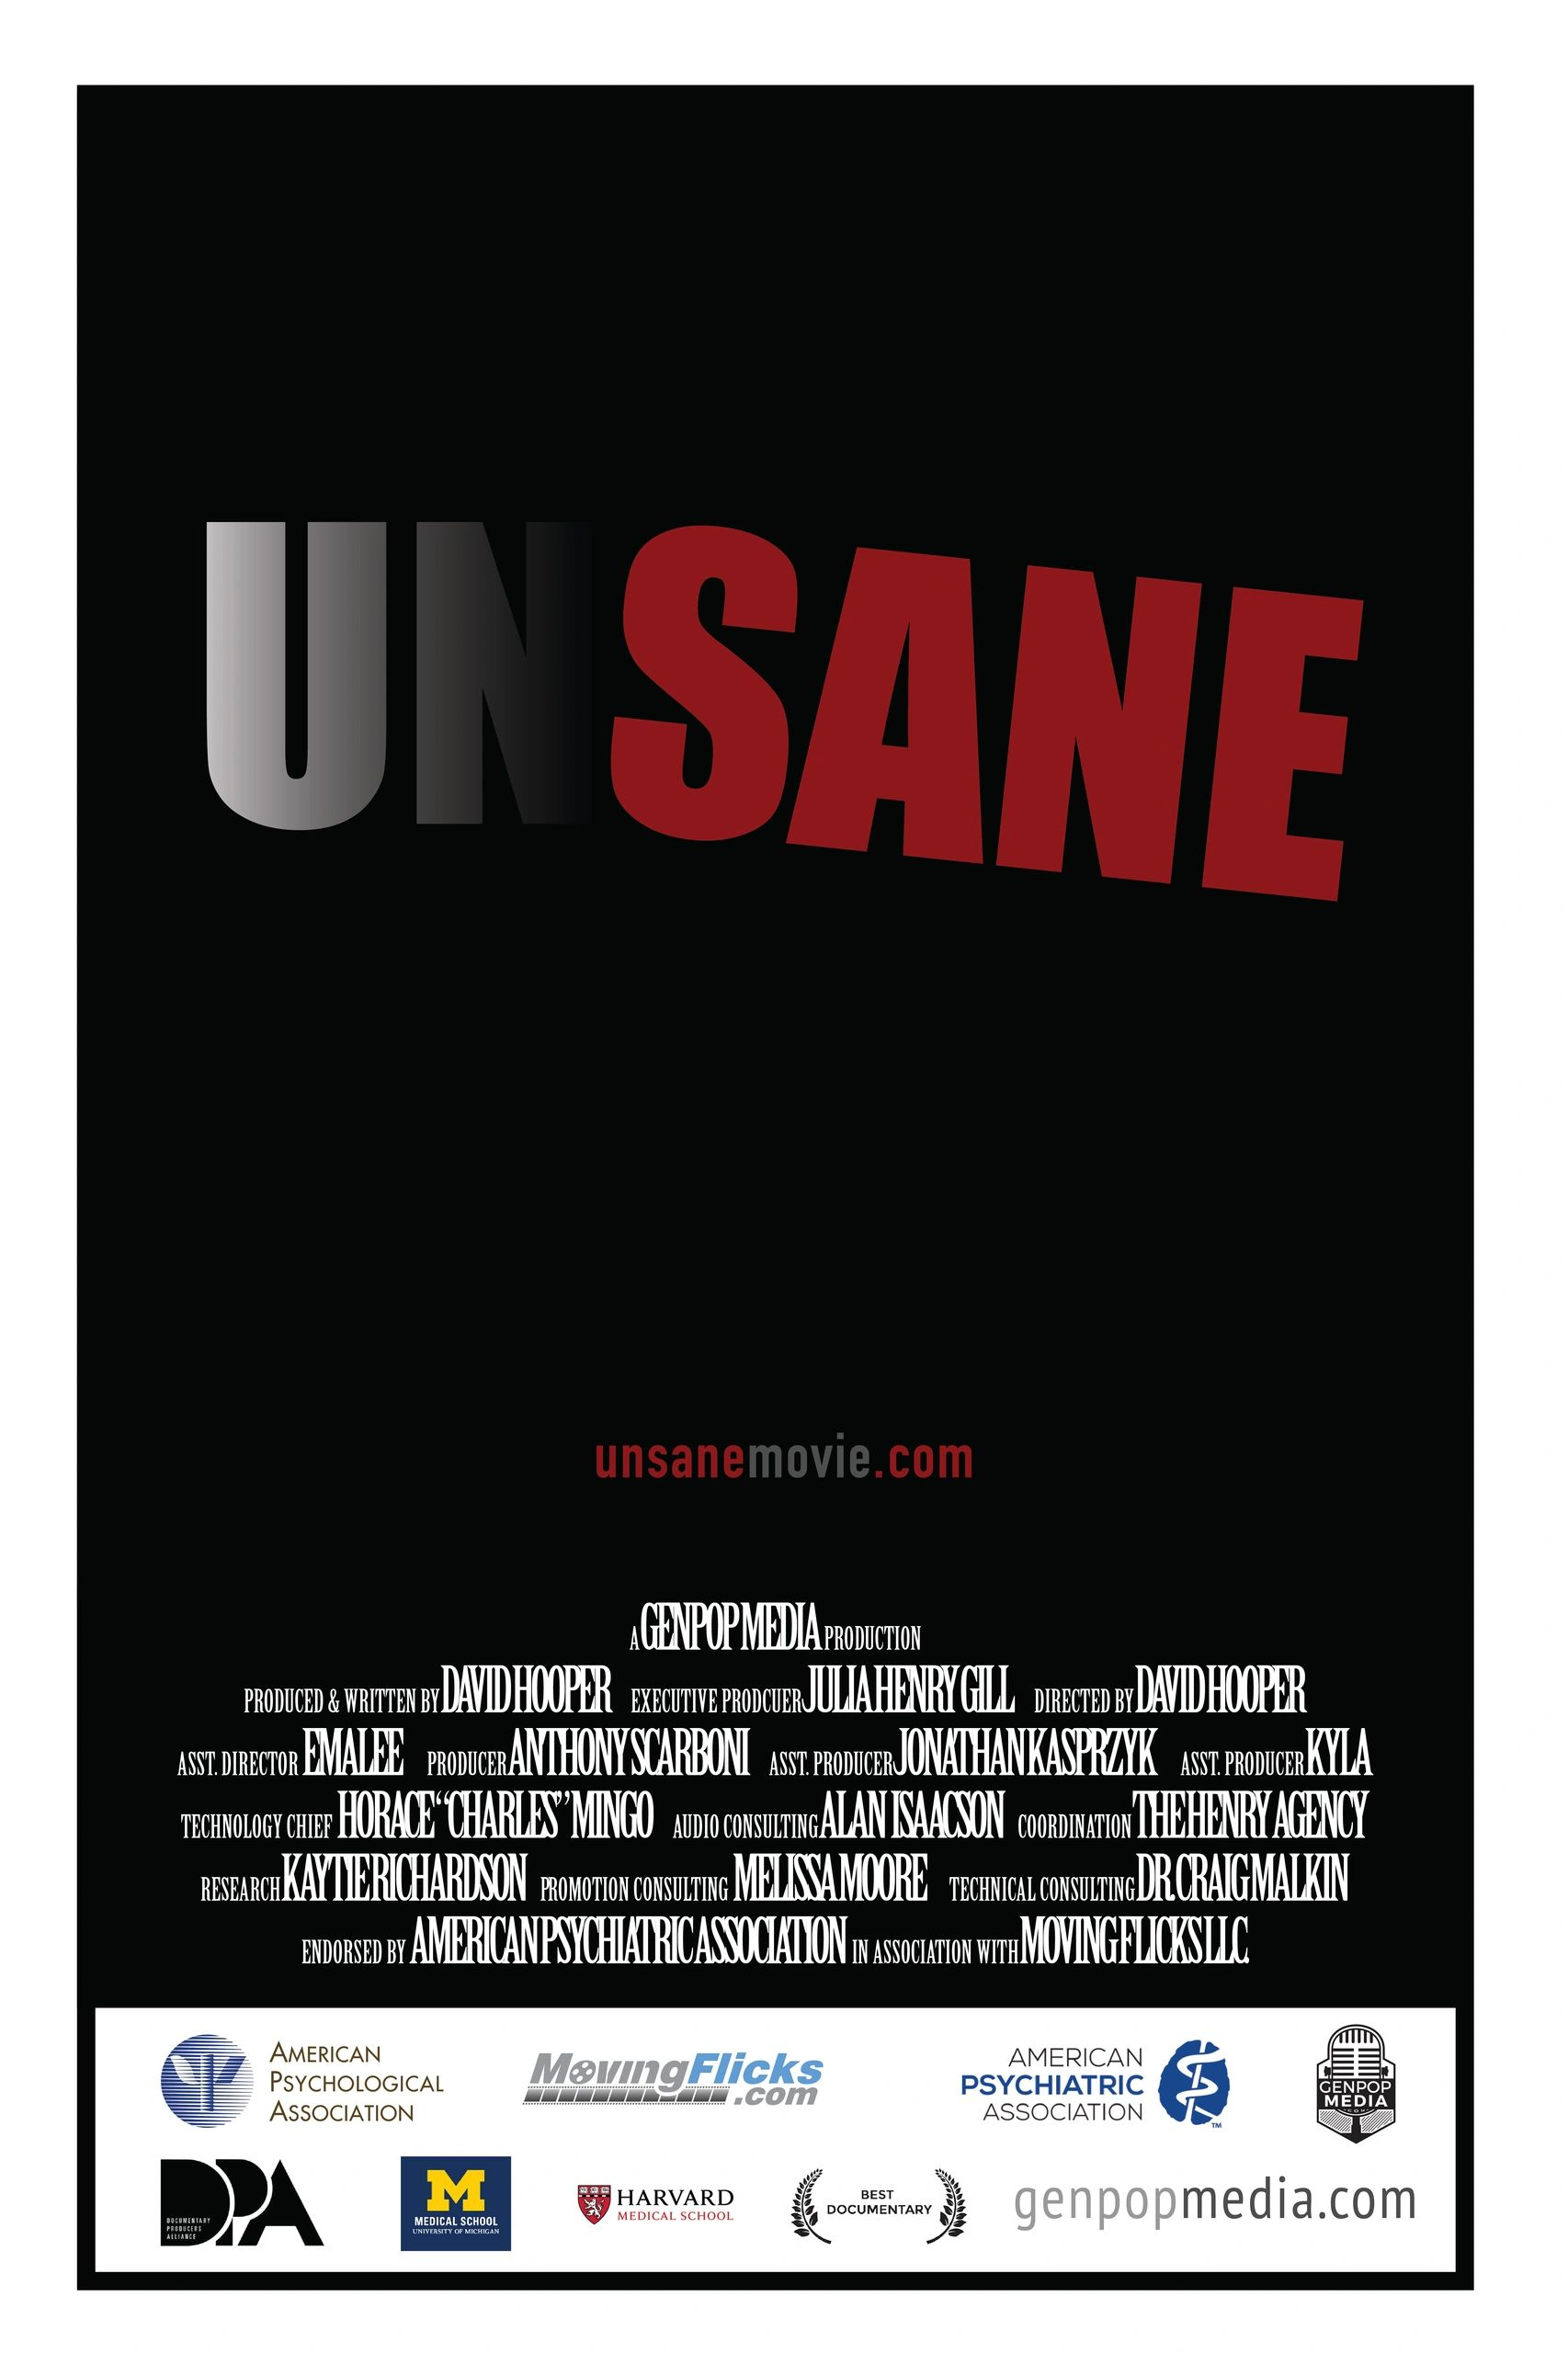 Movie DVD Cover with credits listed for UNSANE, the movie due out in February 2021.